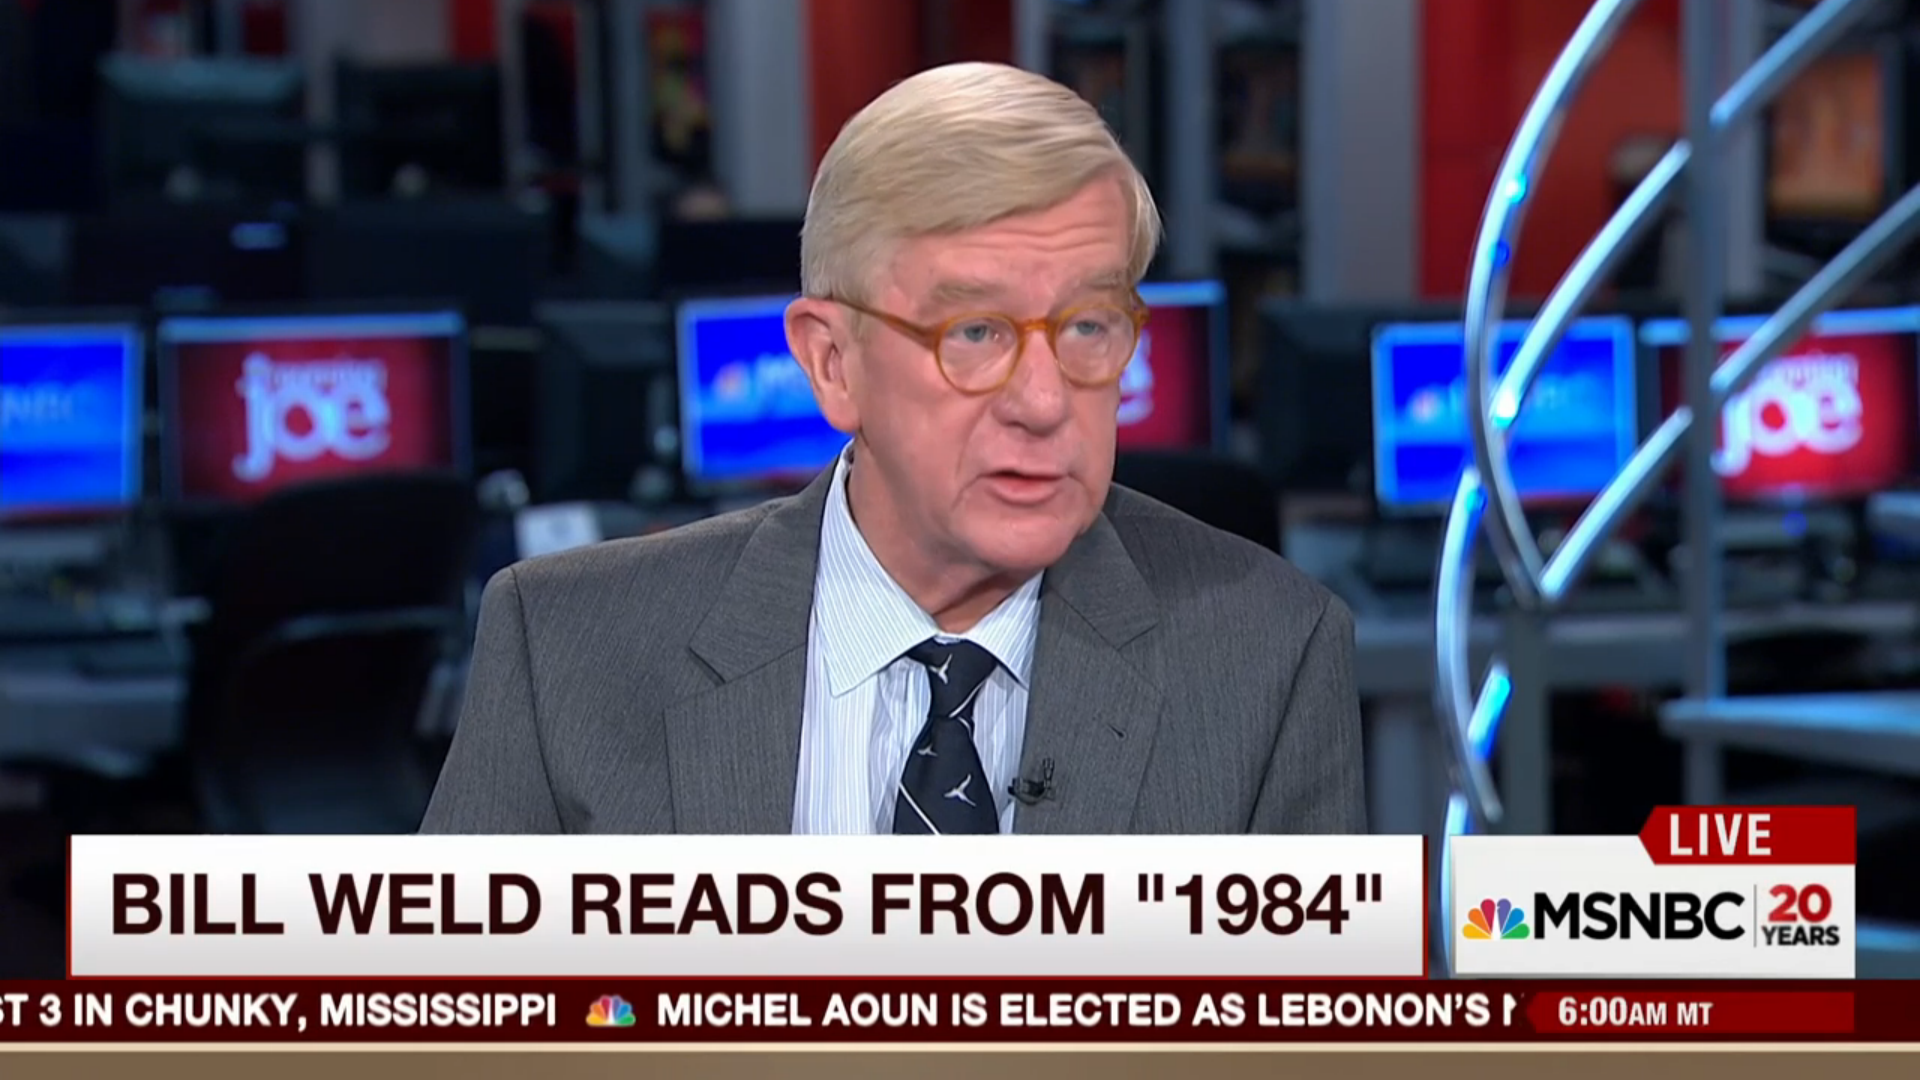 Bill Weld Morning Joe